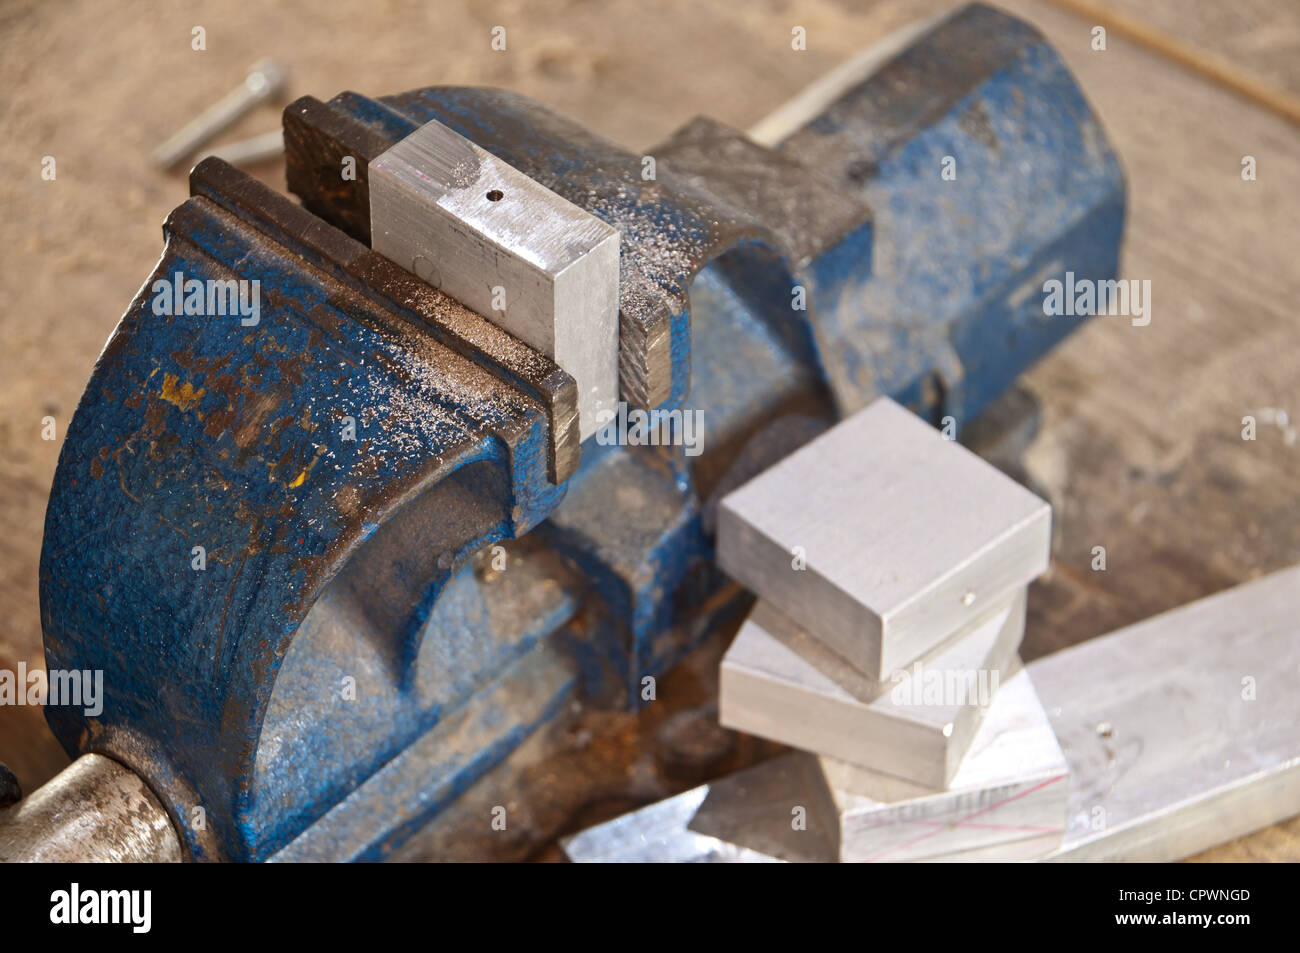 Vice with a block of metal on a wooden workbench Stock Photo